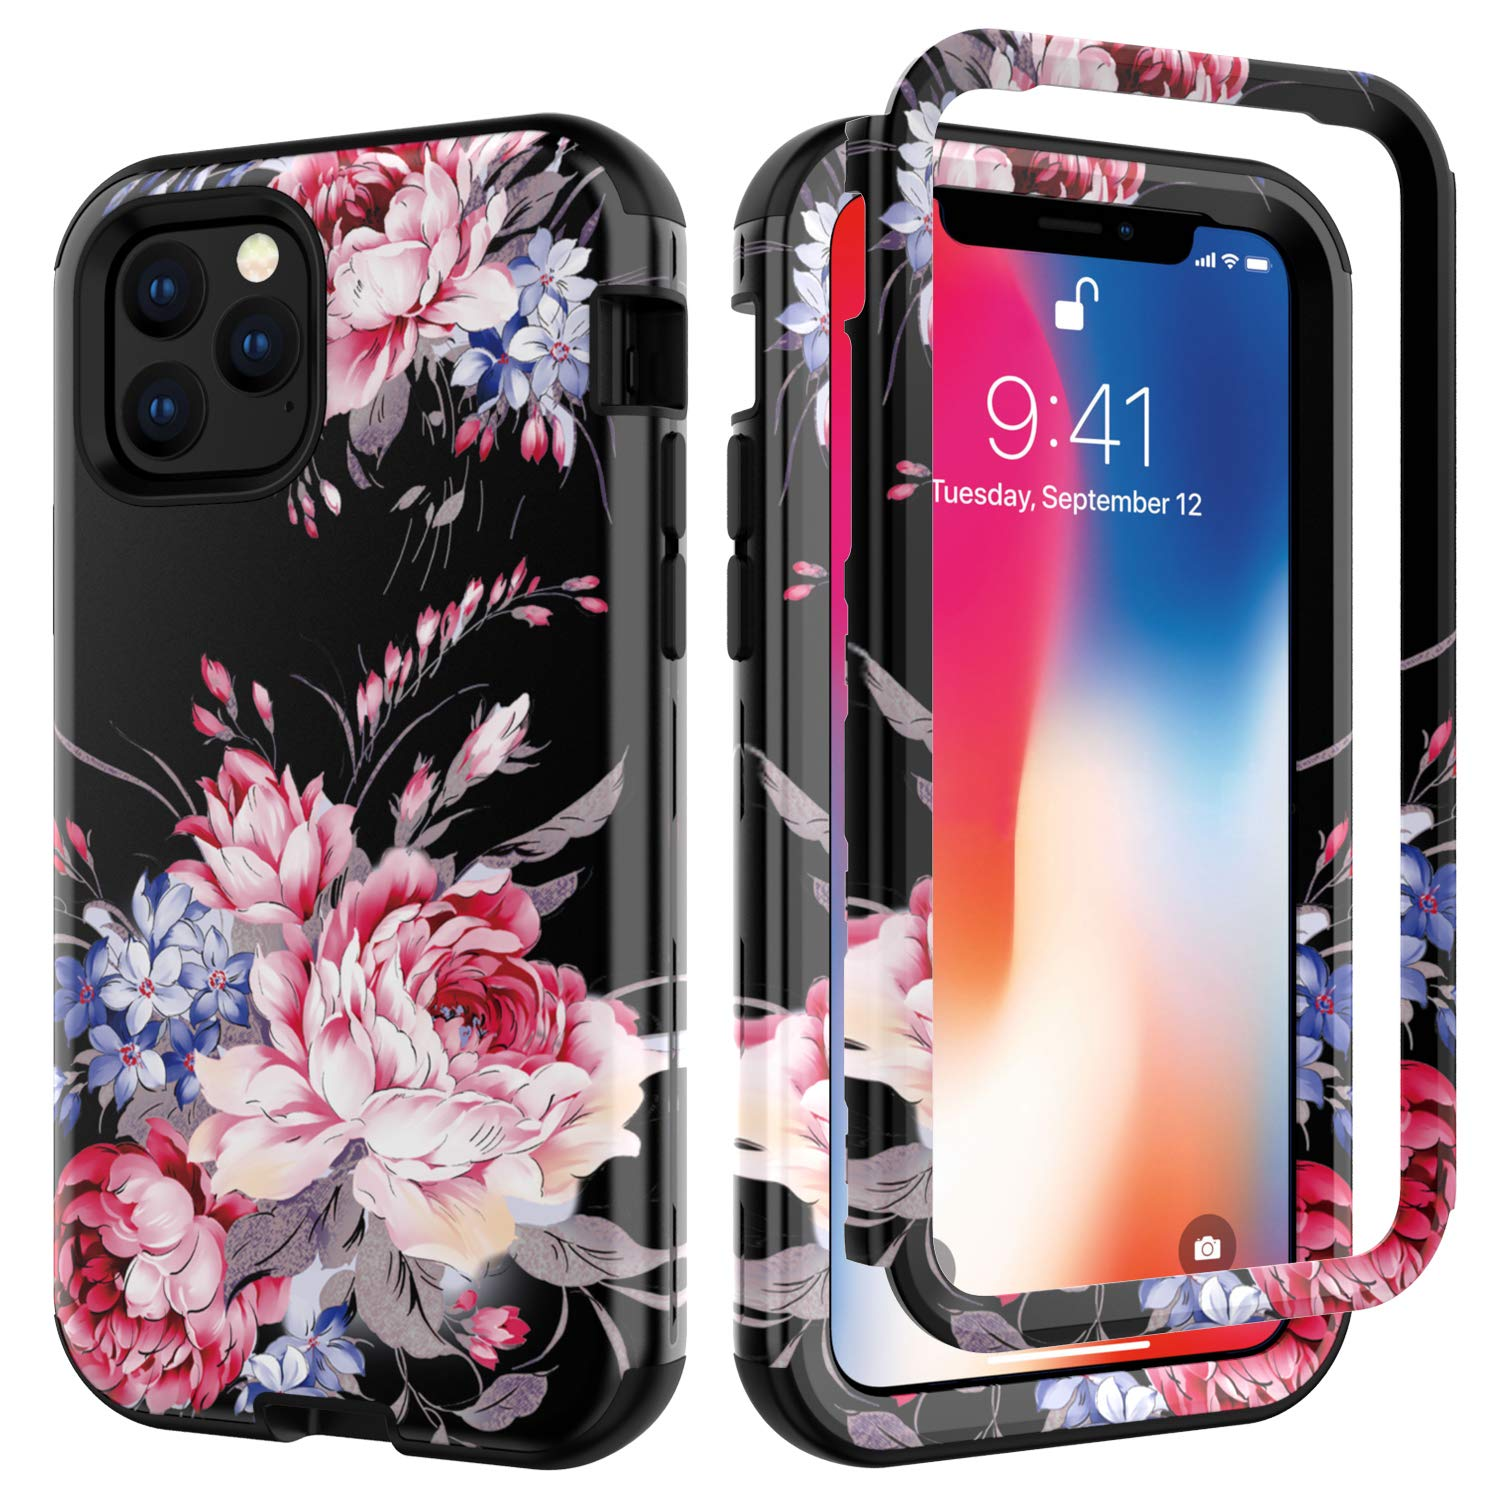 iPhone 11 Pro Case, Ranyi Luxury Floral Flower Pattern Full Body Protection 3 in 1 Hybrid Bumper Shock Absorbing High Impact Heavy Duty Defender Case for Apple 2019 5.8 Inch iPhone 11 Pro (Pink/red) by Ranyi